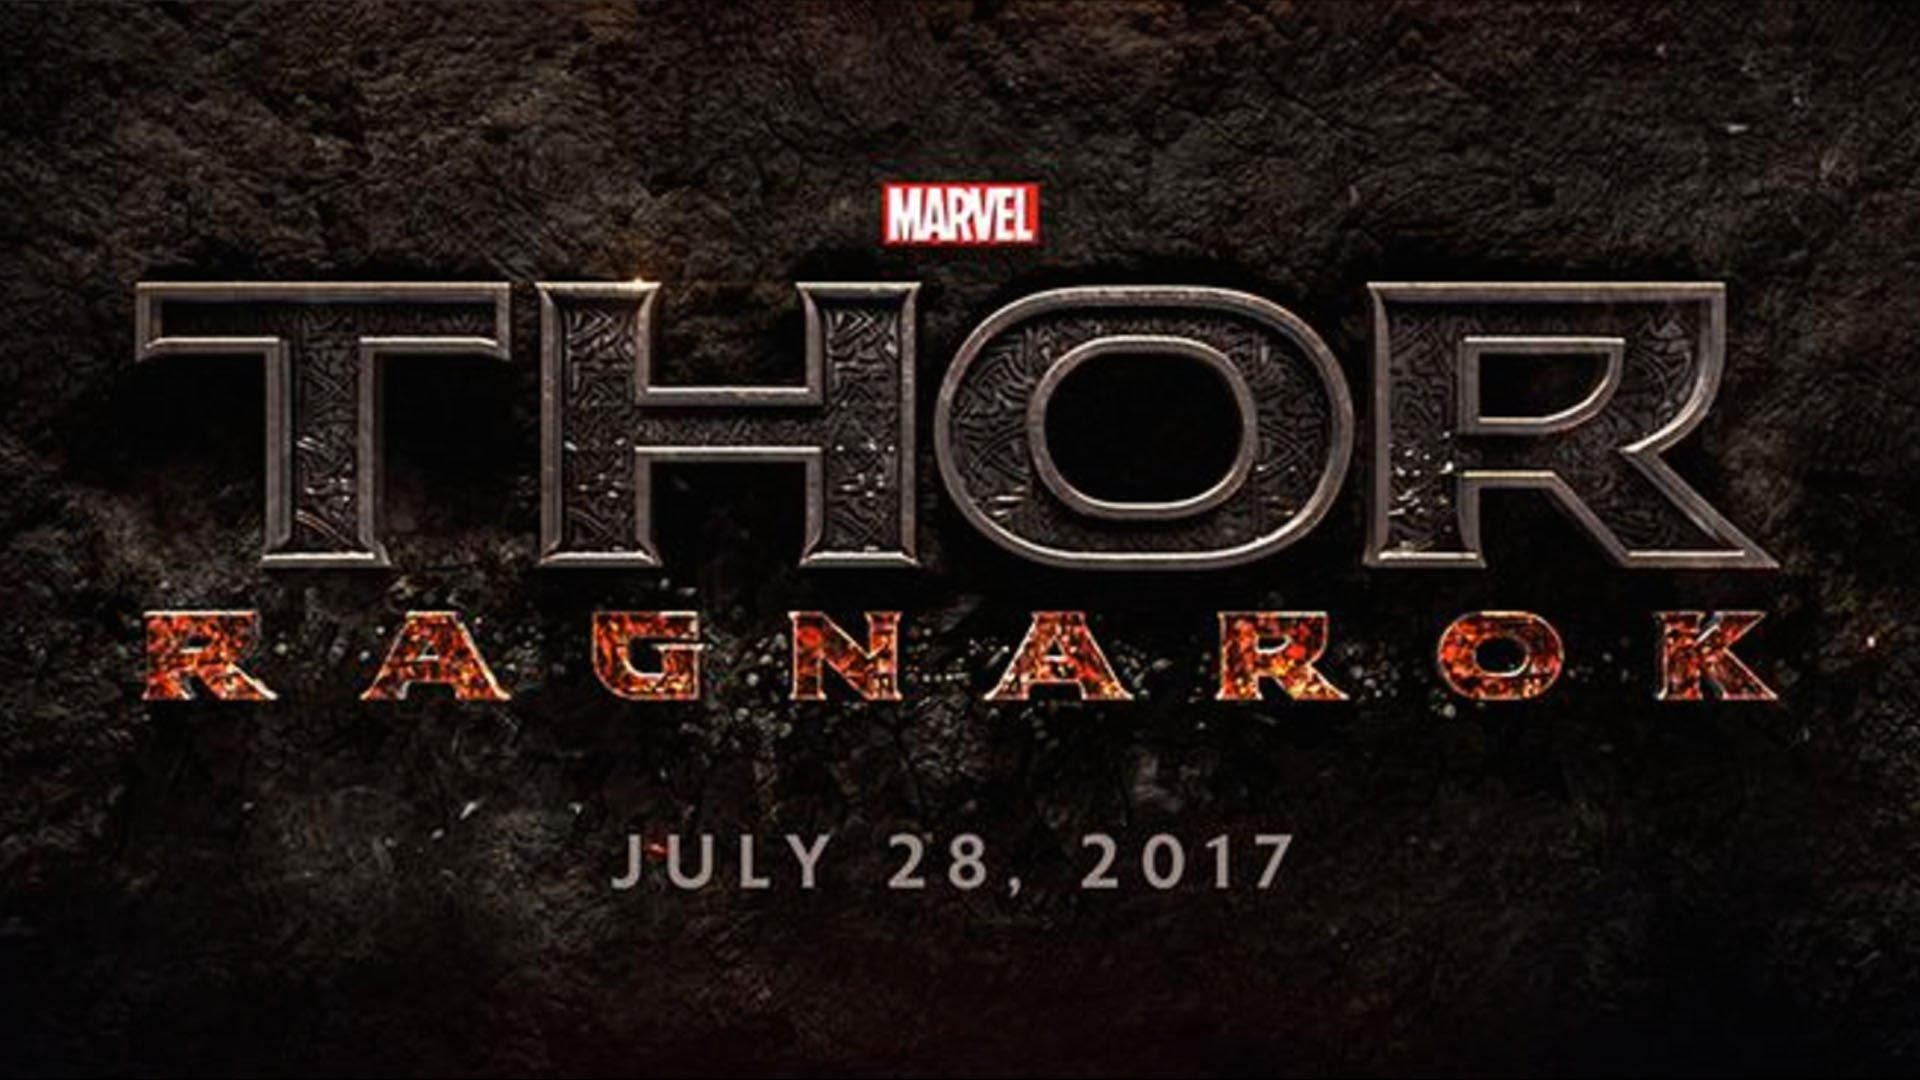 thor-ragnarok-director-taika-waititi-marvel-disney